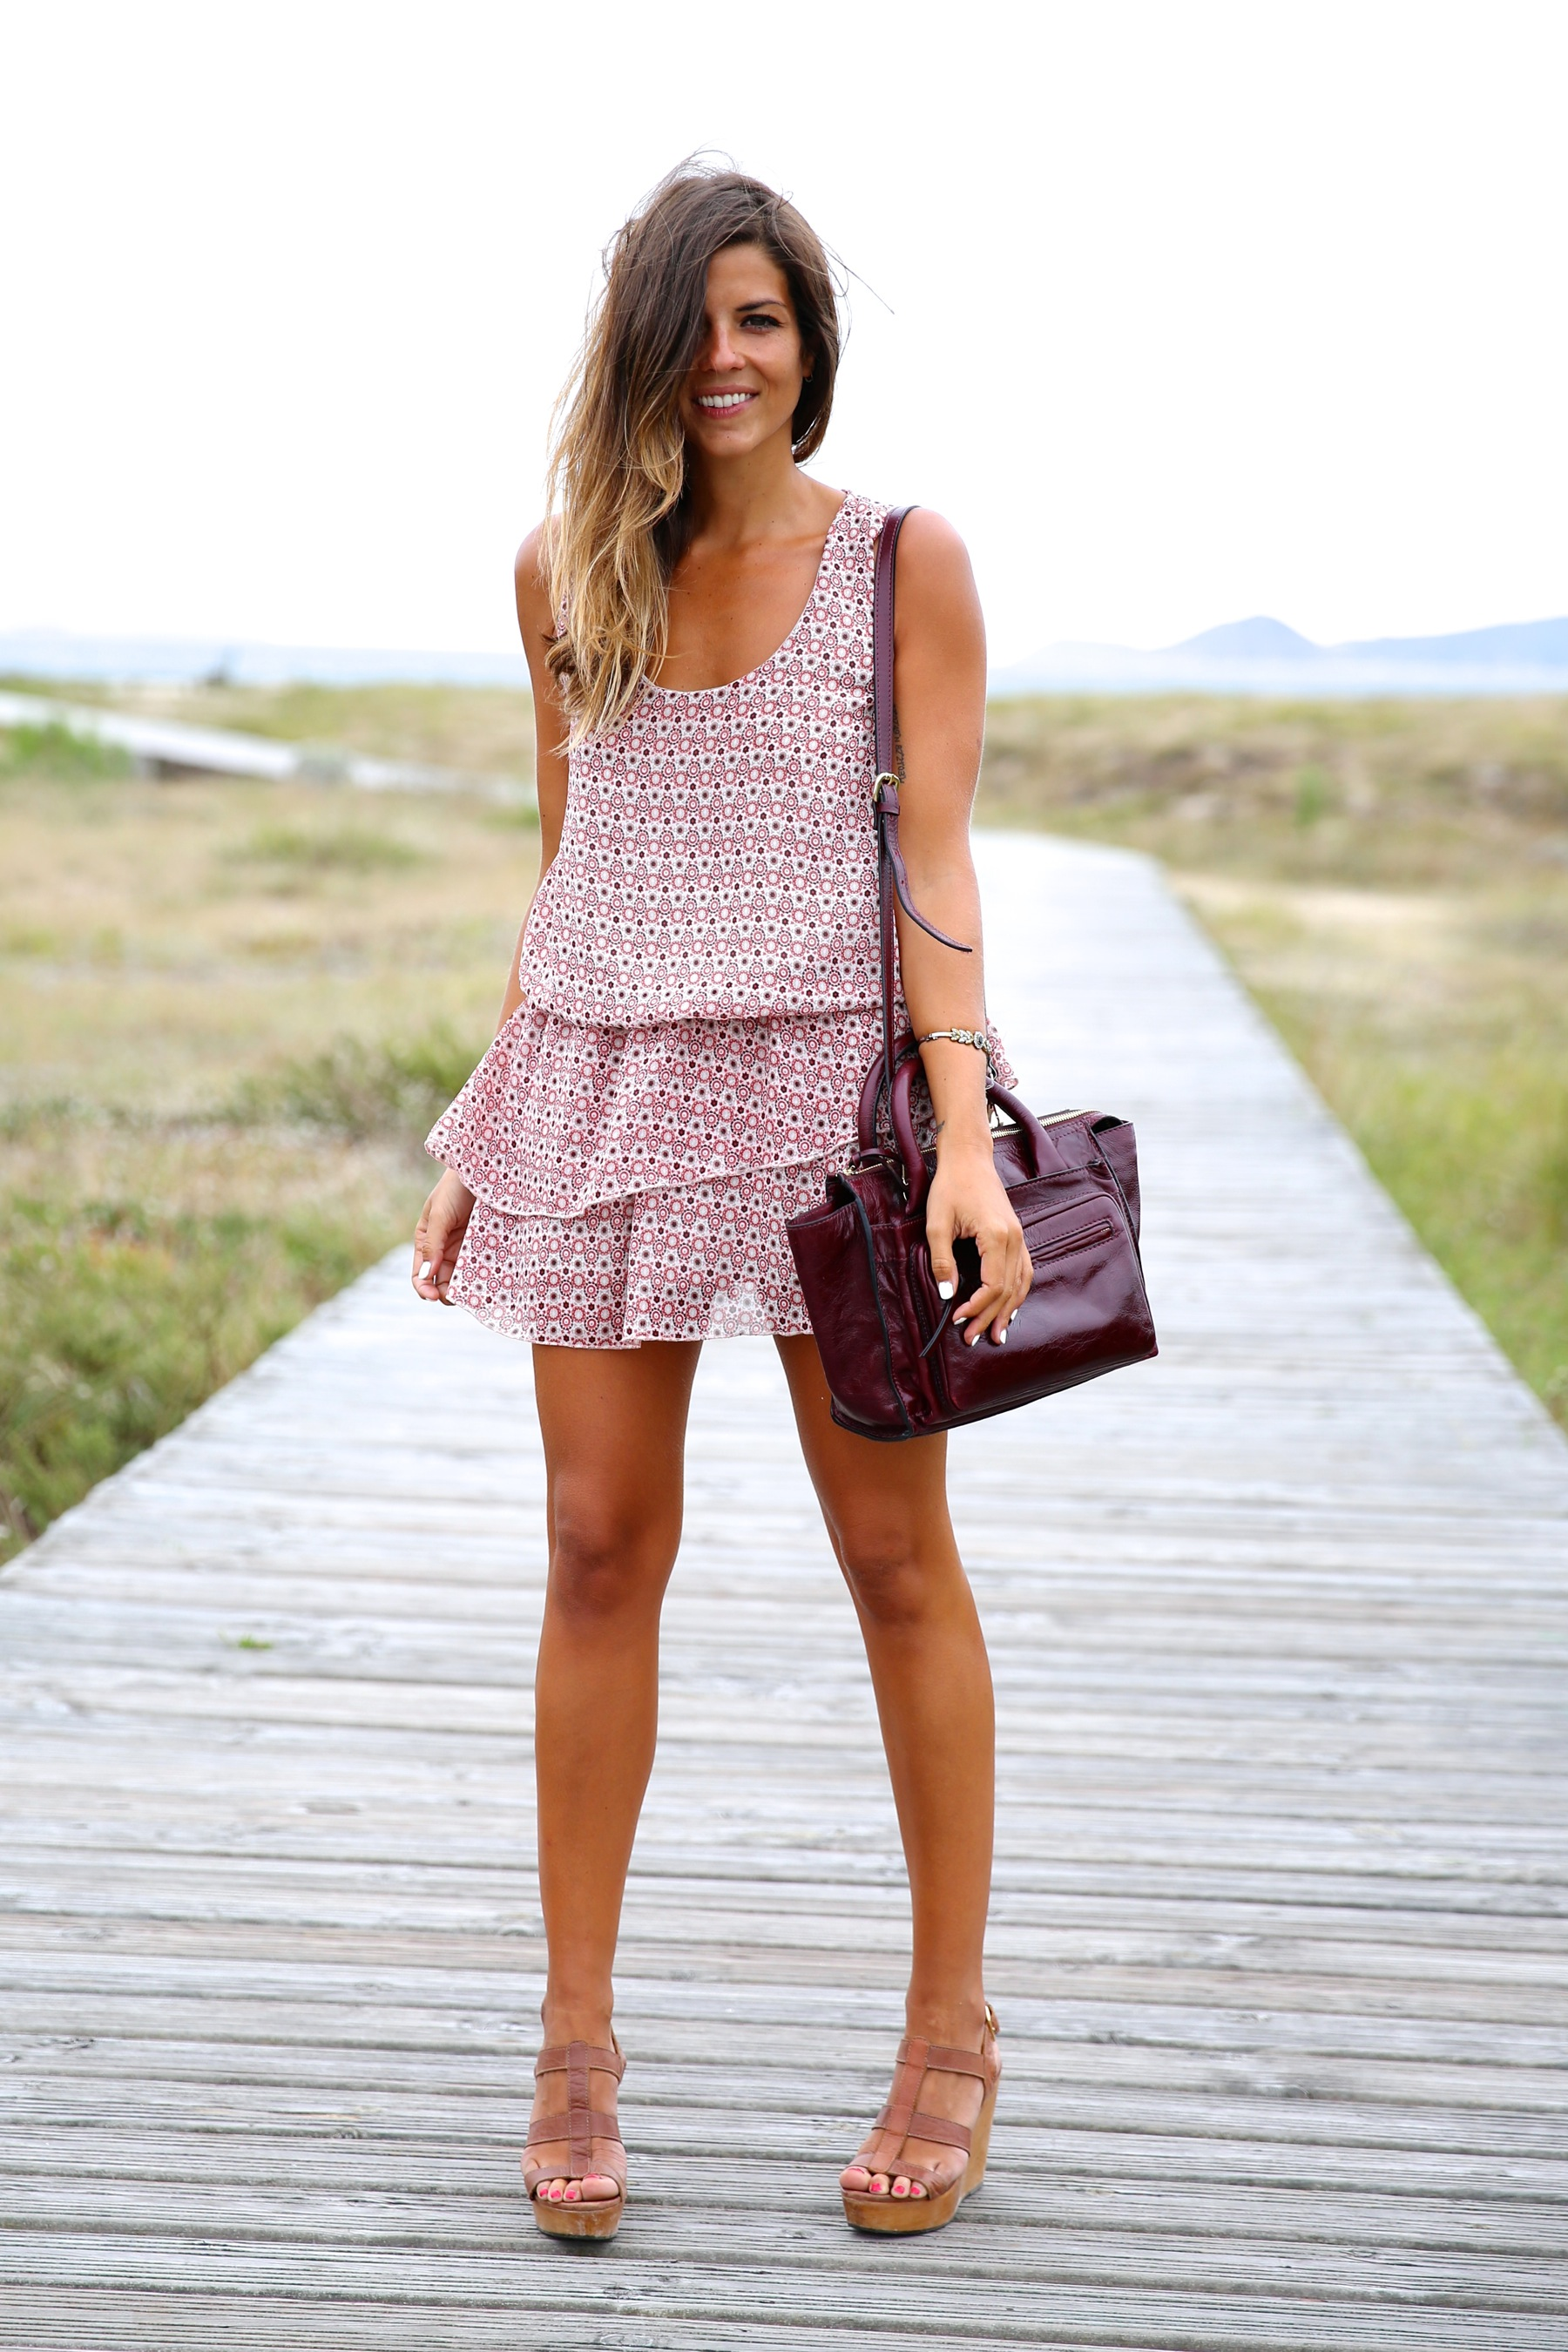 trendy_taste-look-outfit-street_style-ootd-blog-blogger-fashion_spain-moda_españa-boho-beach-playa-galicia-vestido-dress-sandalias-sandals-11